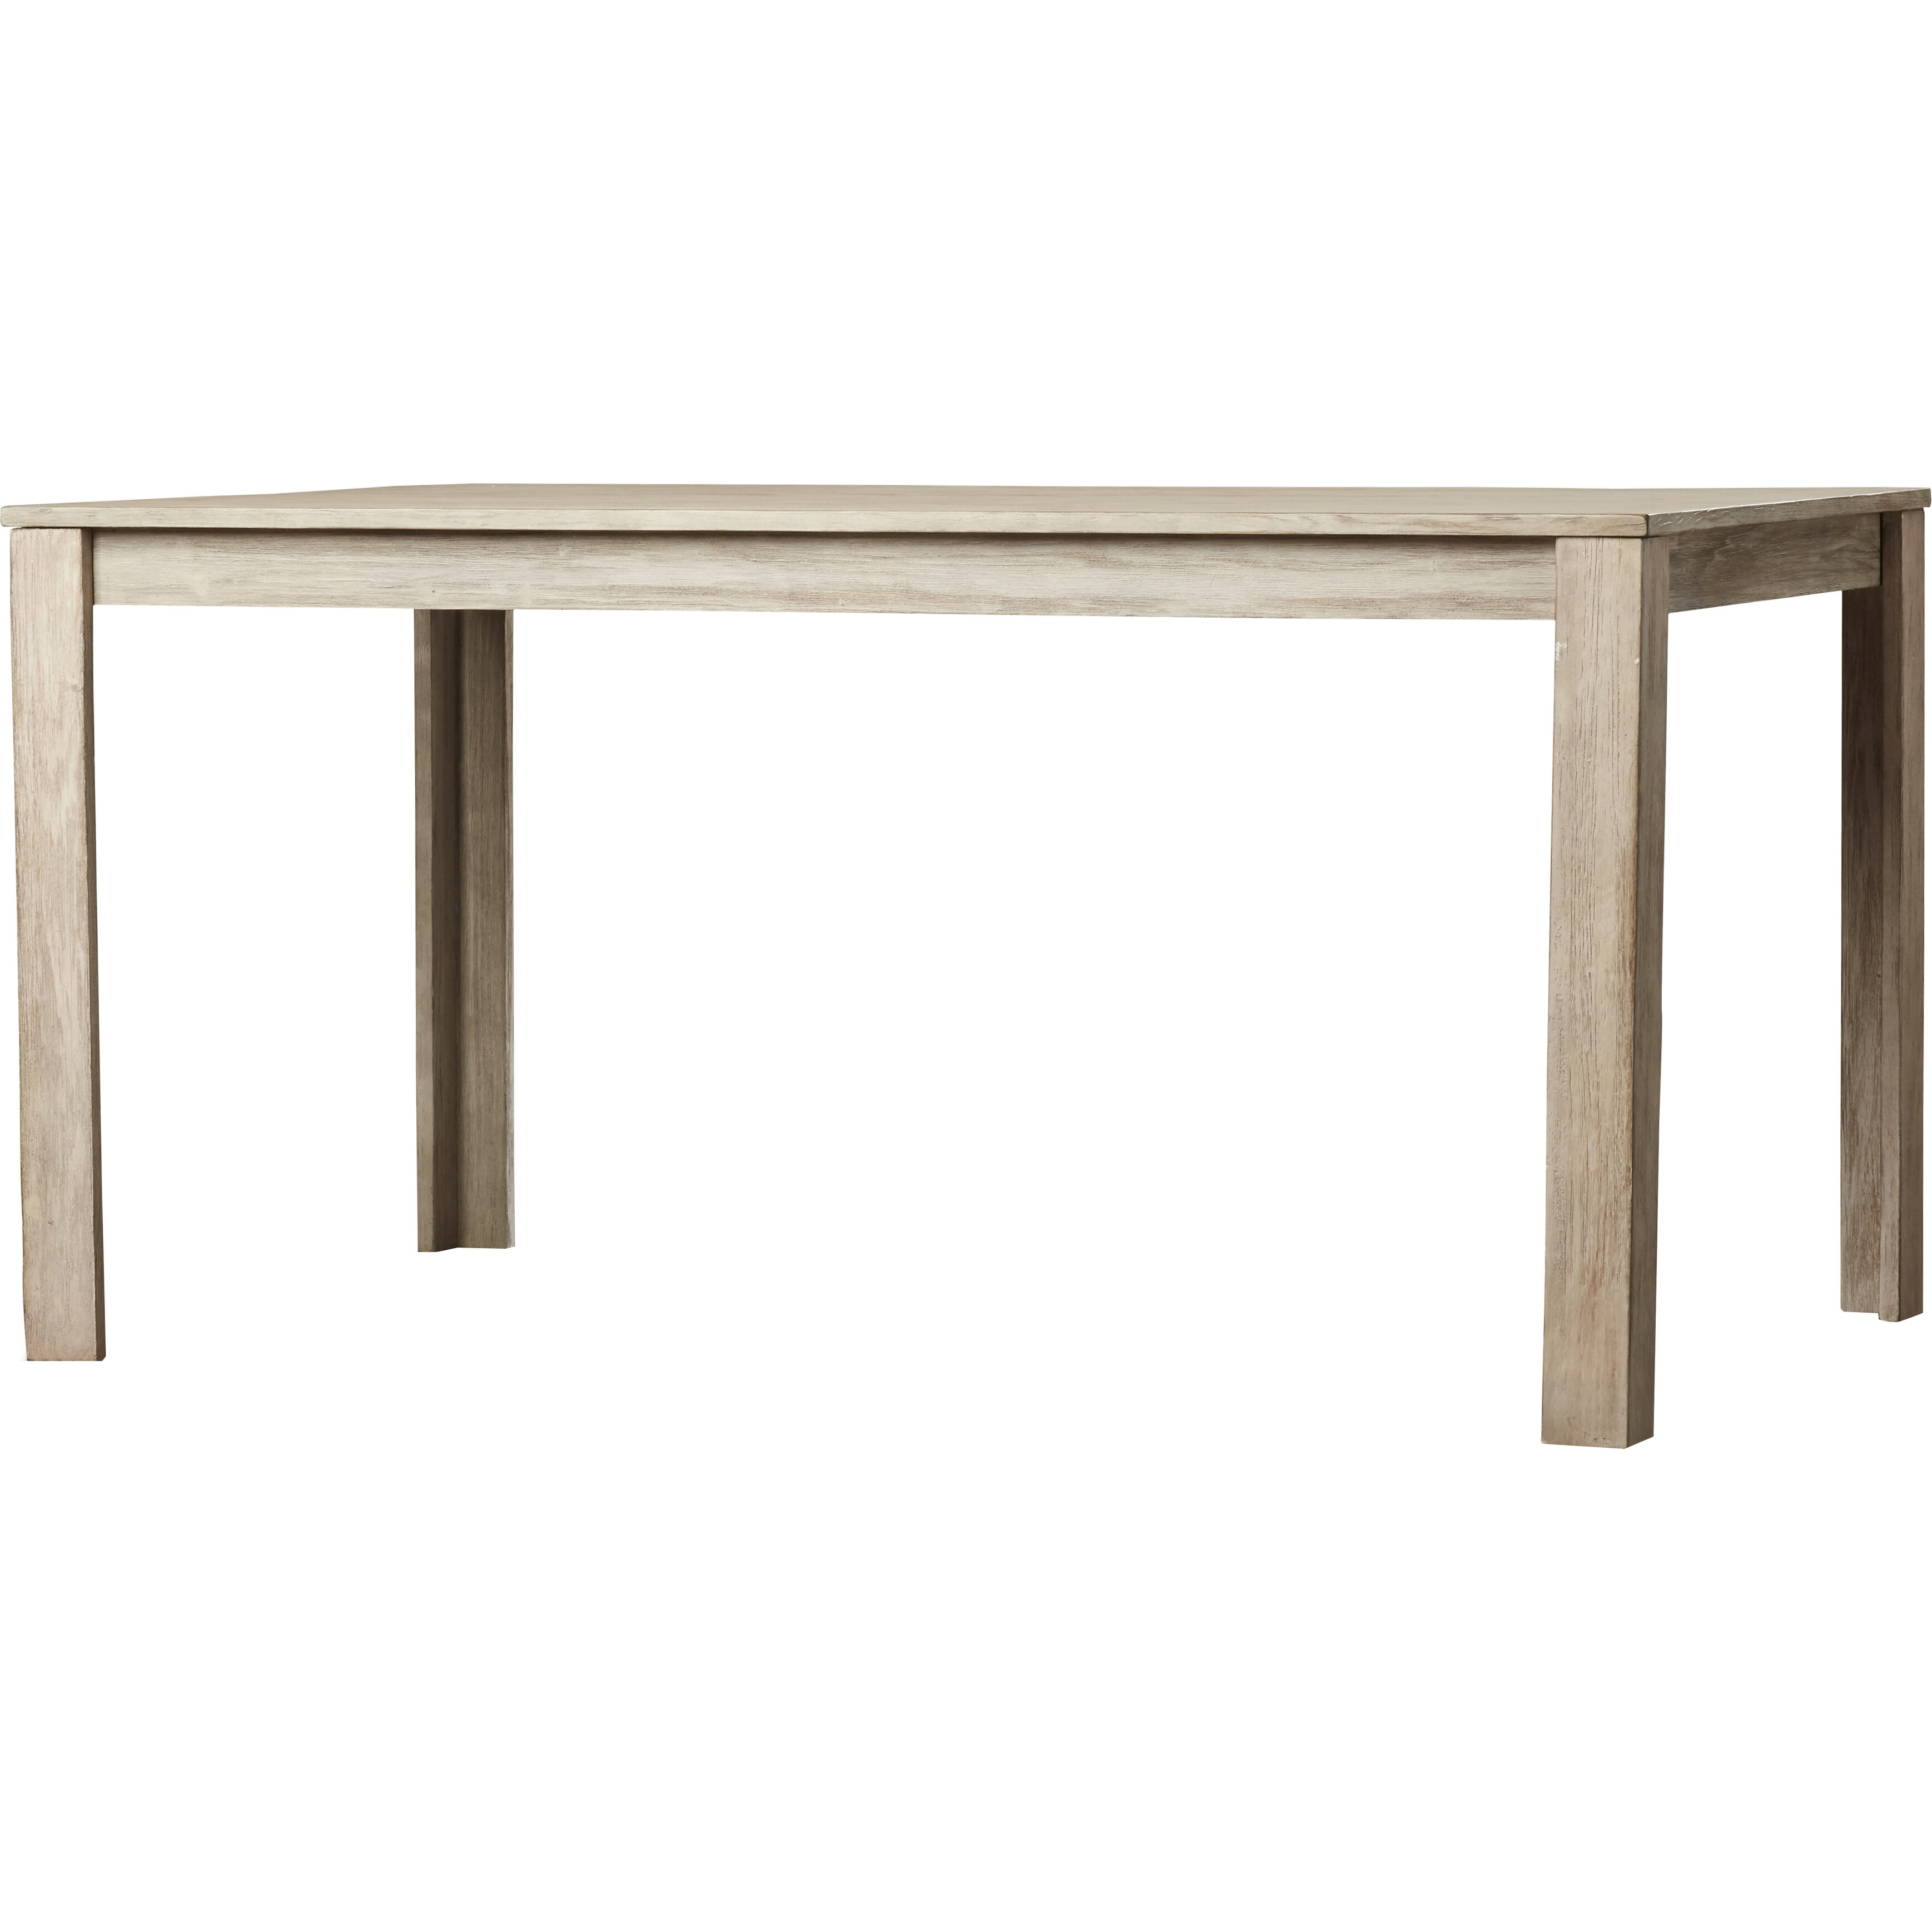 Beachcrest Home Emsley Dining Table BCHH